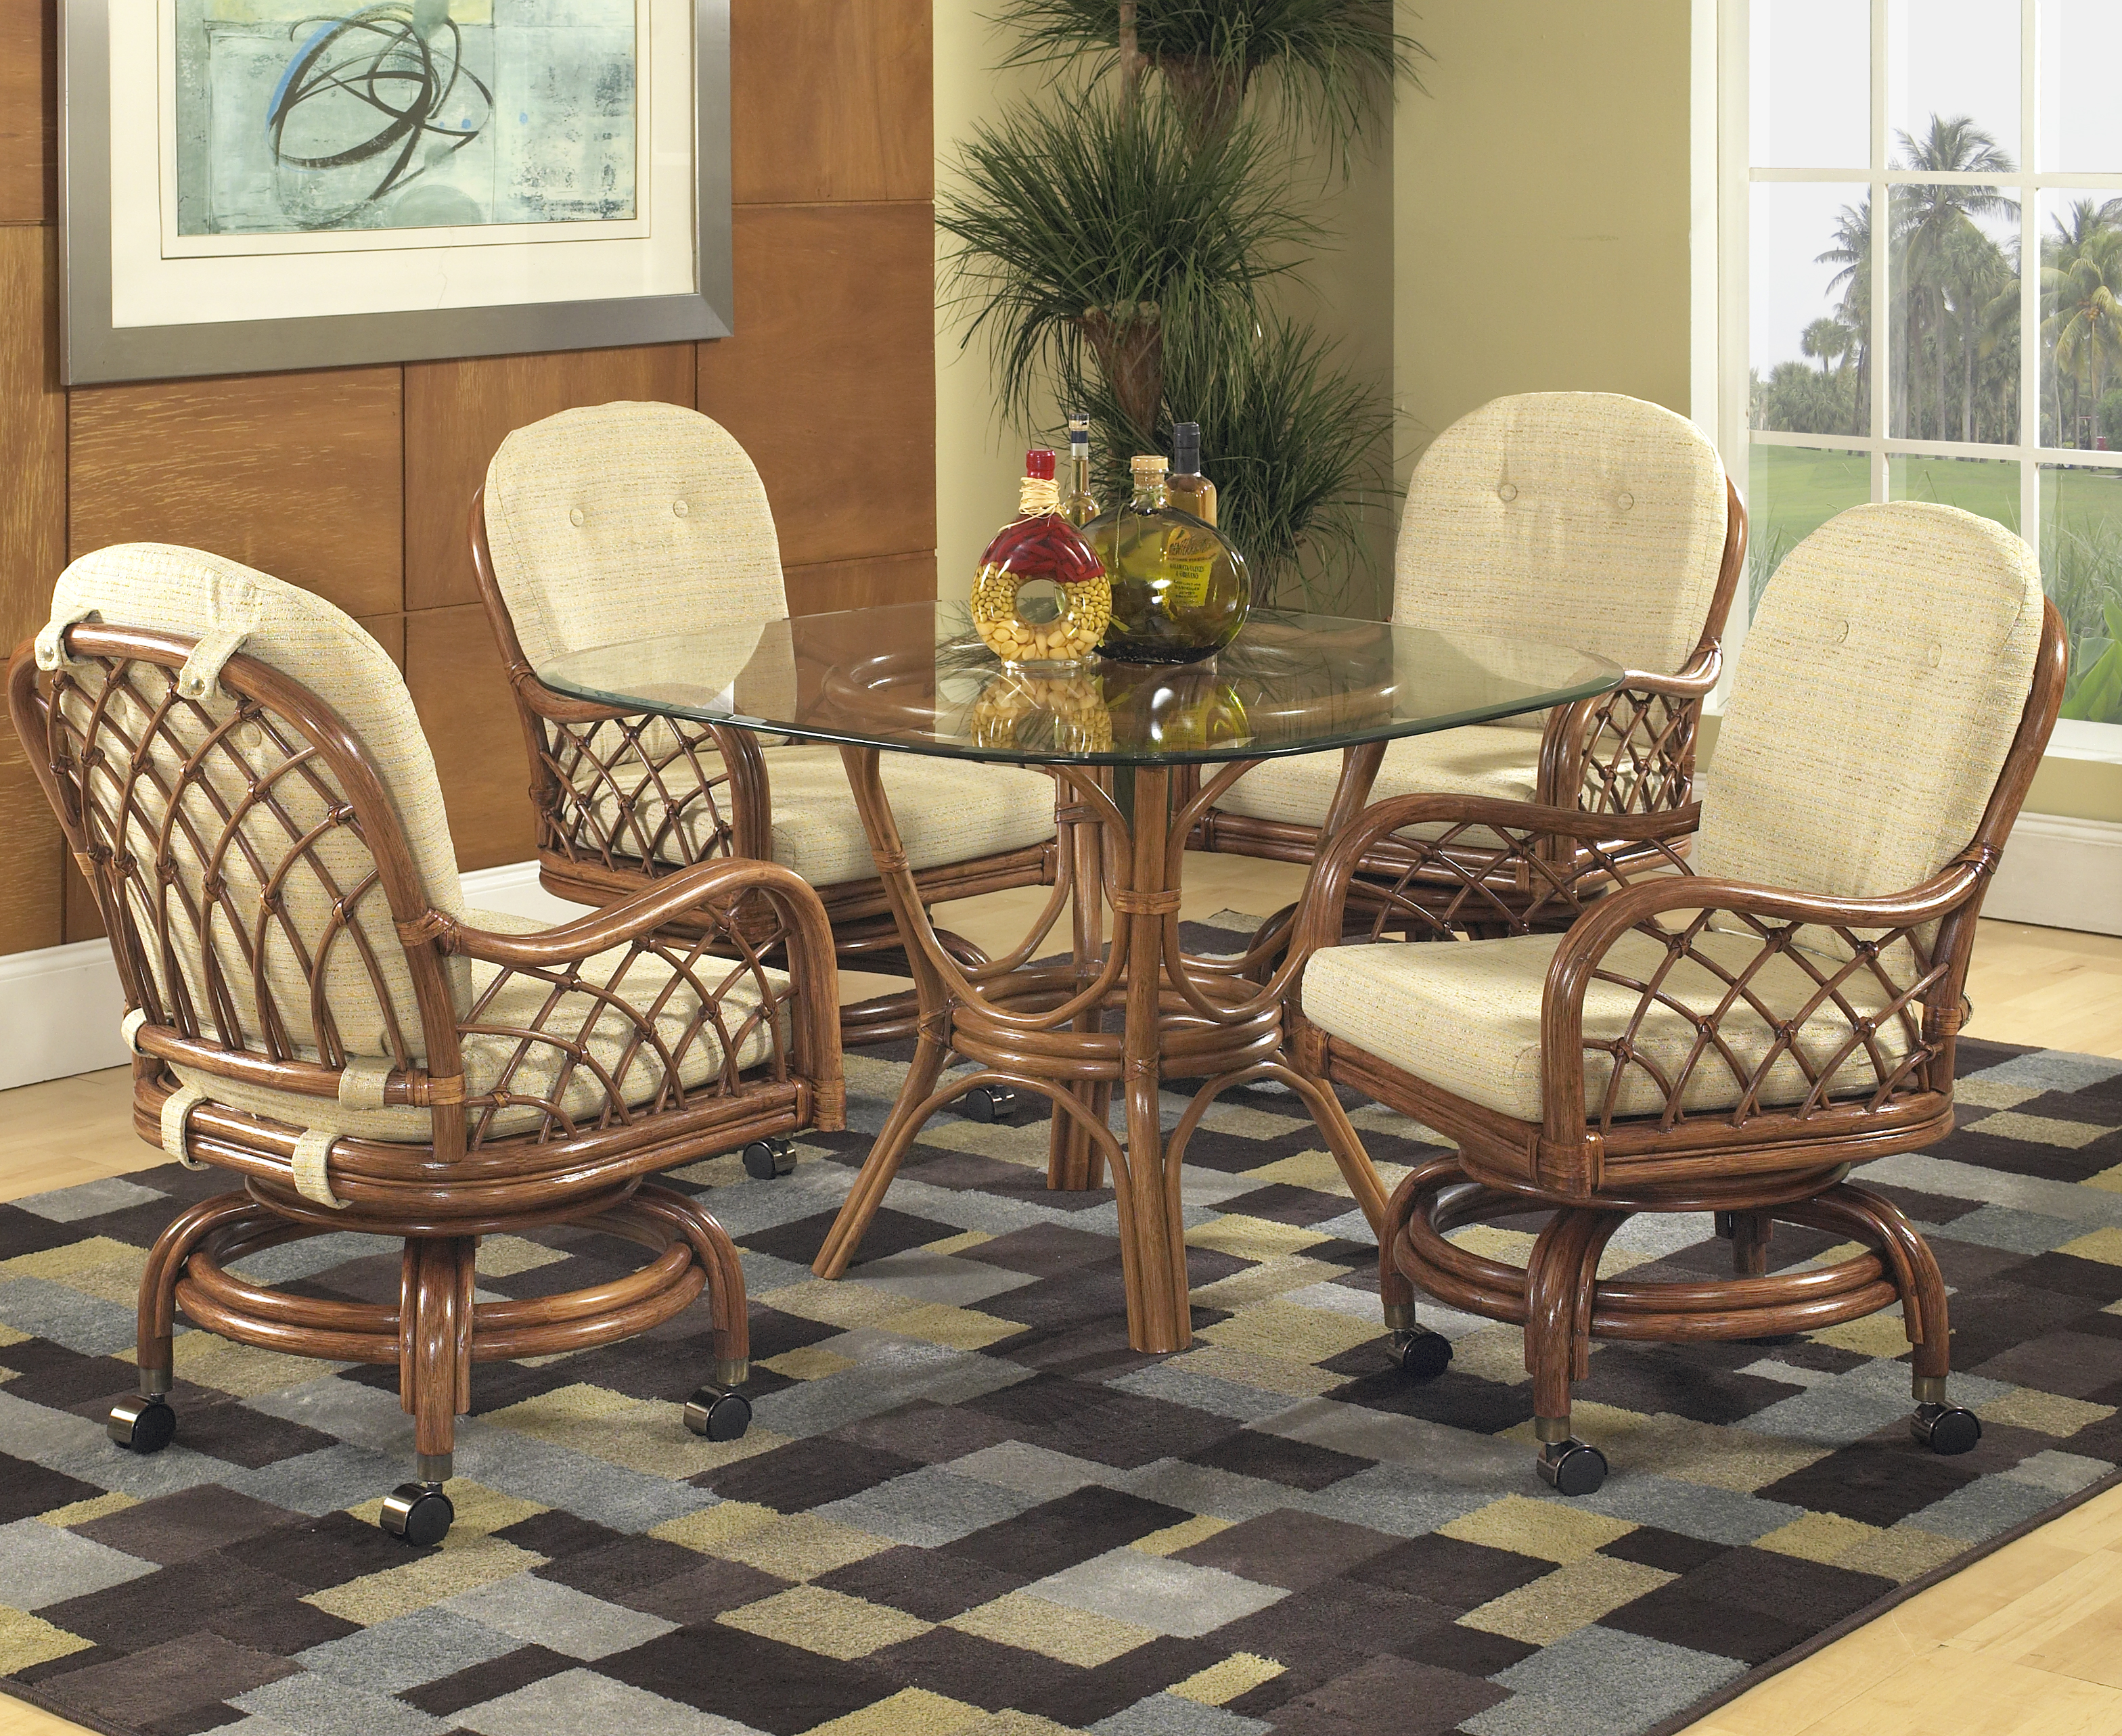 Enjoyable Grand Isle Swivel Dining By Classic Rattan Theyellowbook Wood Chair Design Ideas Theyellowbookinfo